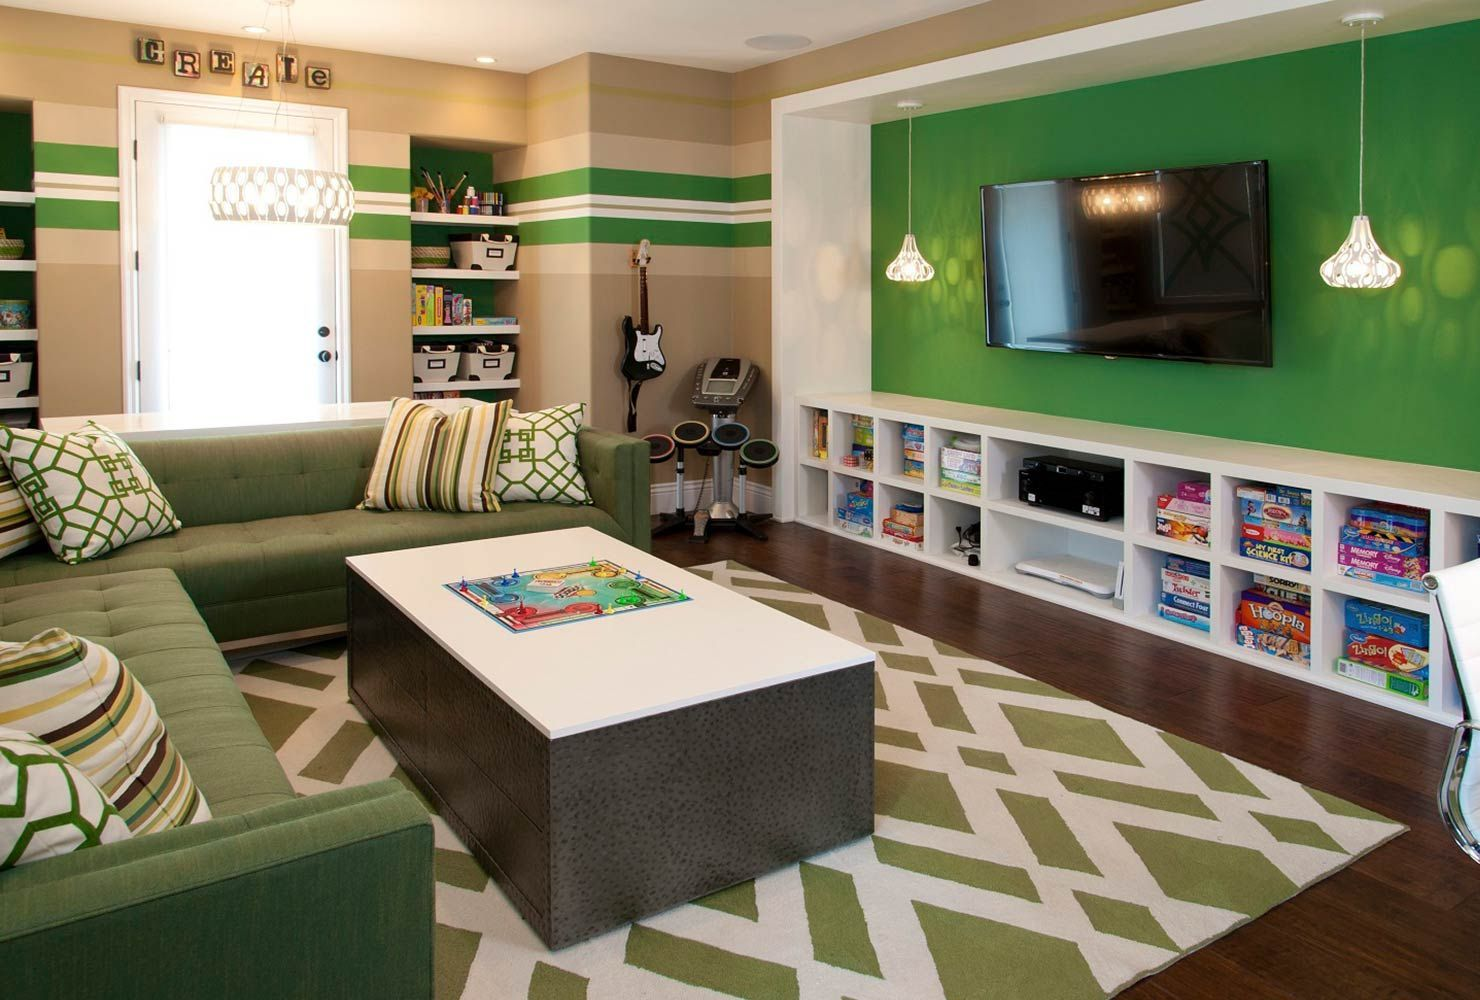 38 Best Game Room Ideas For Any Entertaining Shutterfly 38 Best Game Room Ideas For Any Entertaining Shut Small Game Rooms Game Room Family Game Room Kids